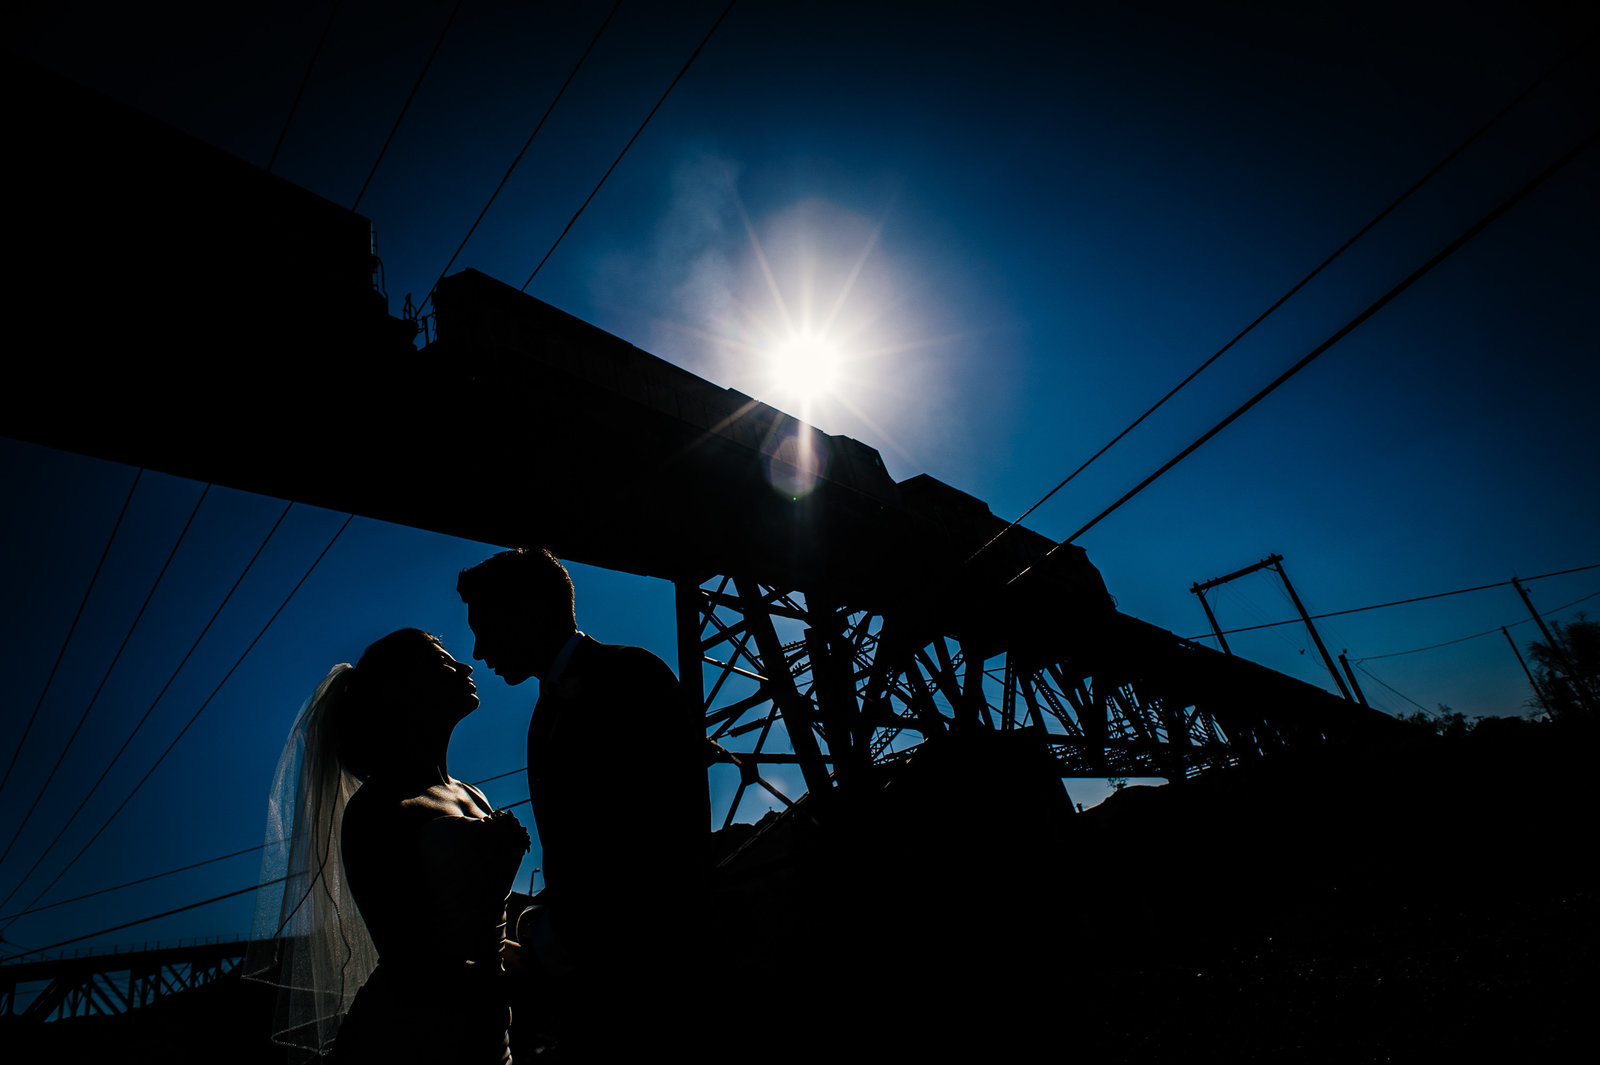 266-El-paso-wedding-photographer-El Paso Wedding Photographer_P20